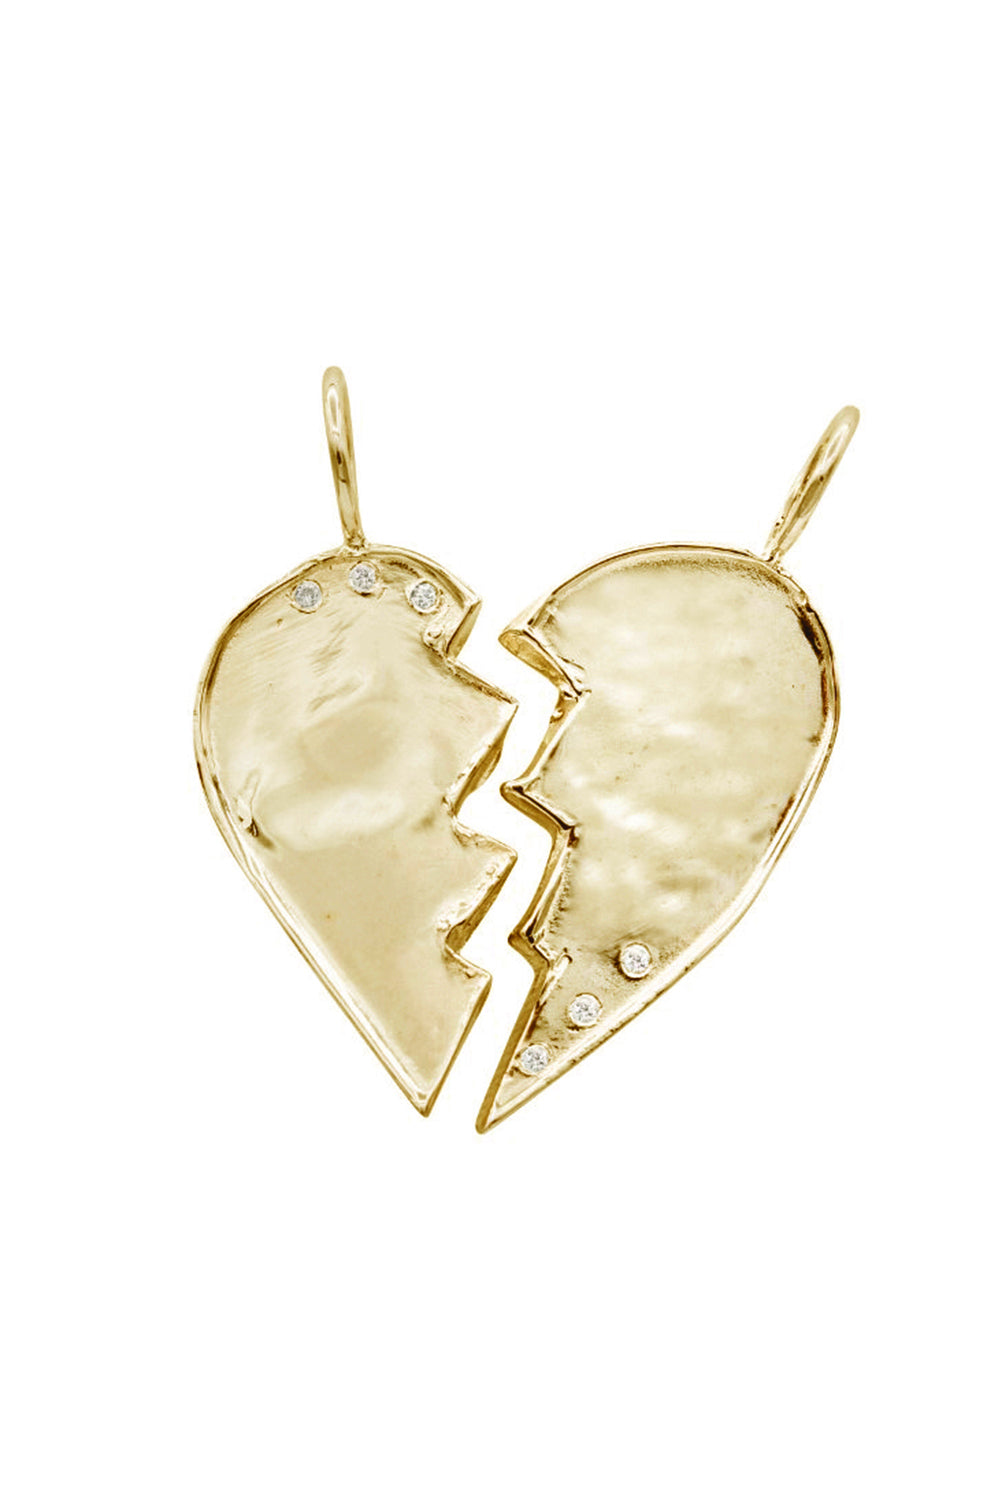 Gold Friendship Heart Charms with Diamonds